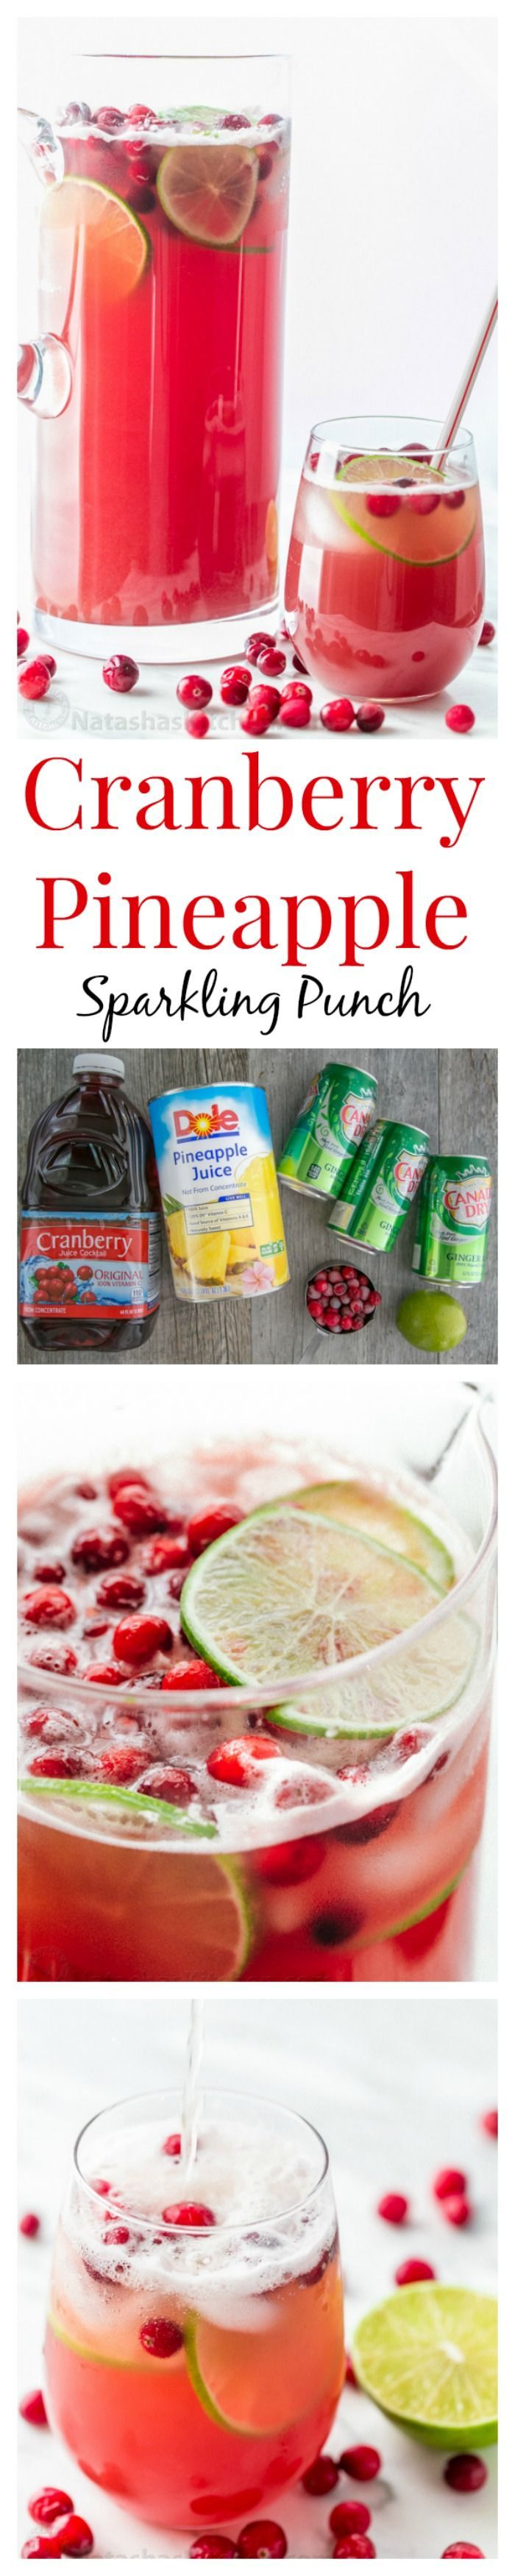 This Cranberry Pineapple Holiday Punch is crisp refreshing and loved by adults… #summersouthernfood